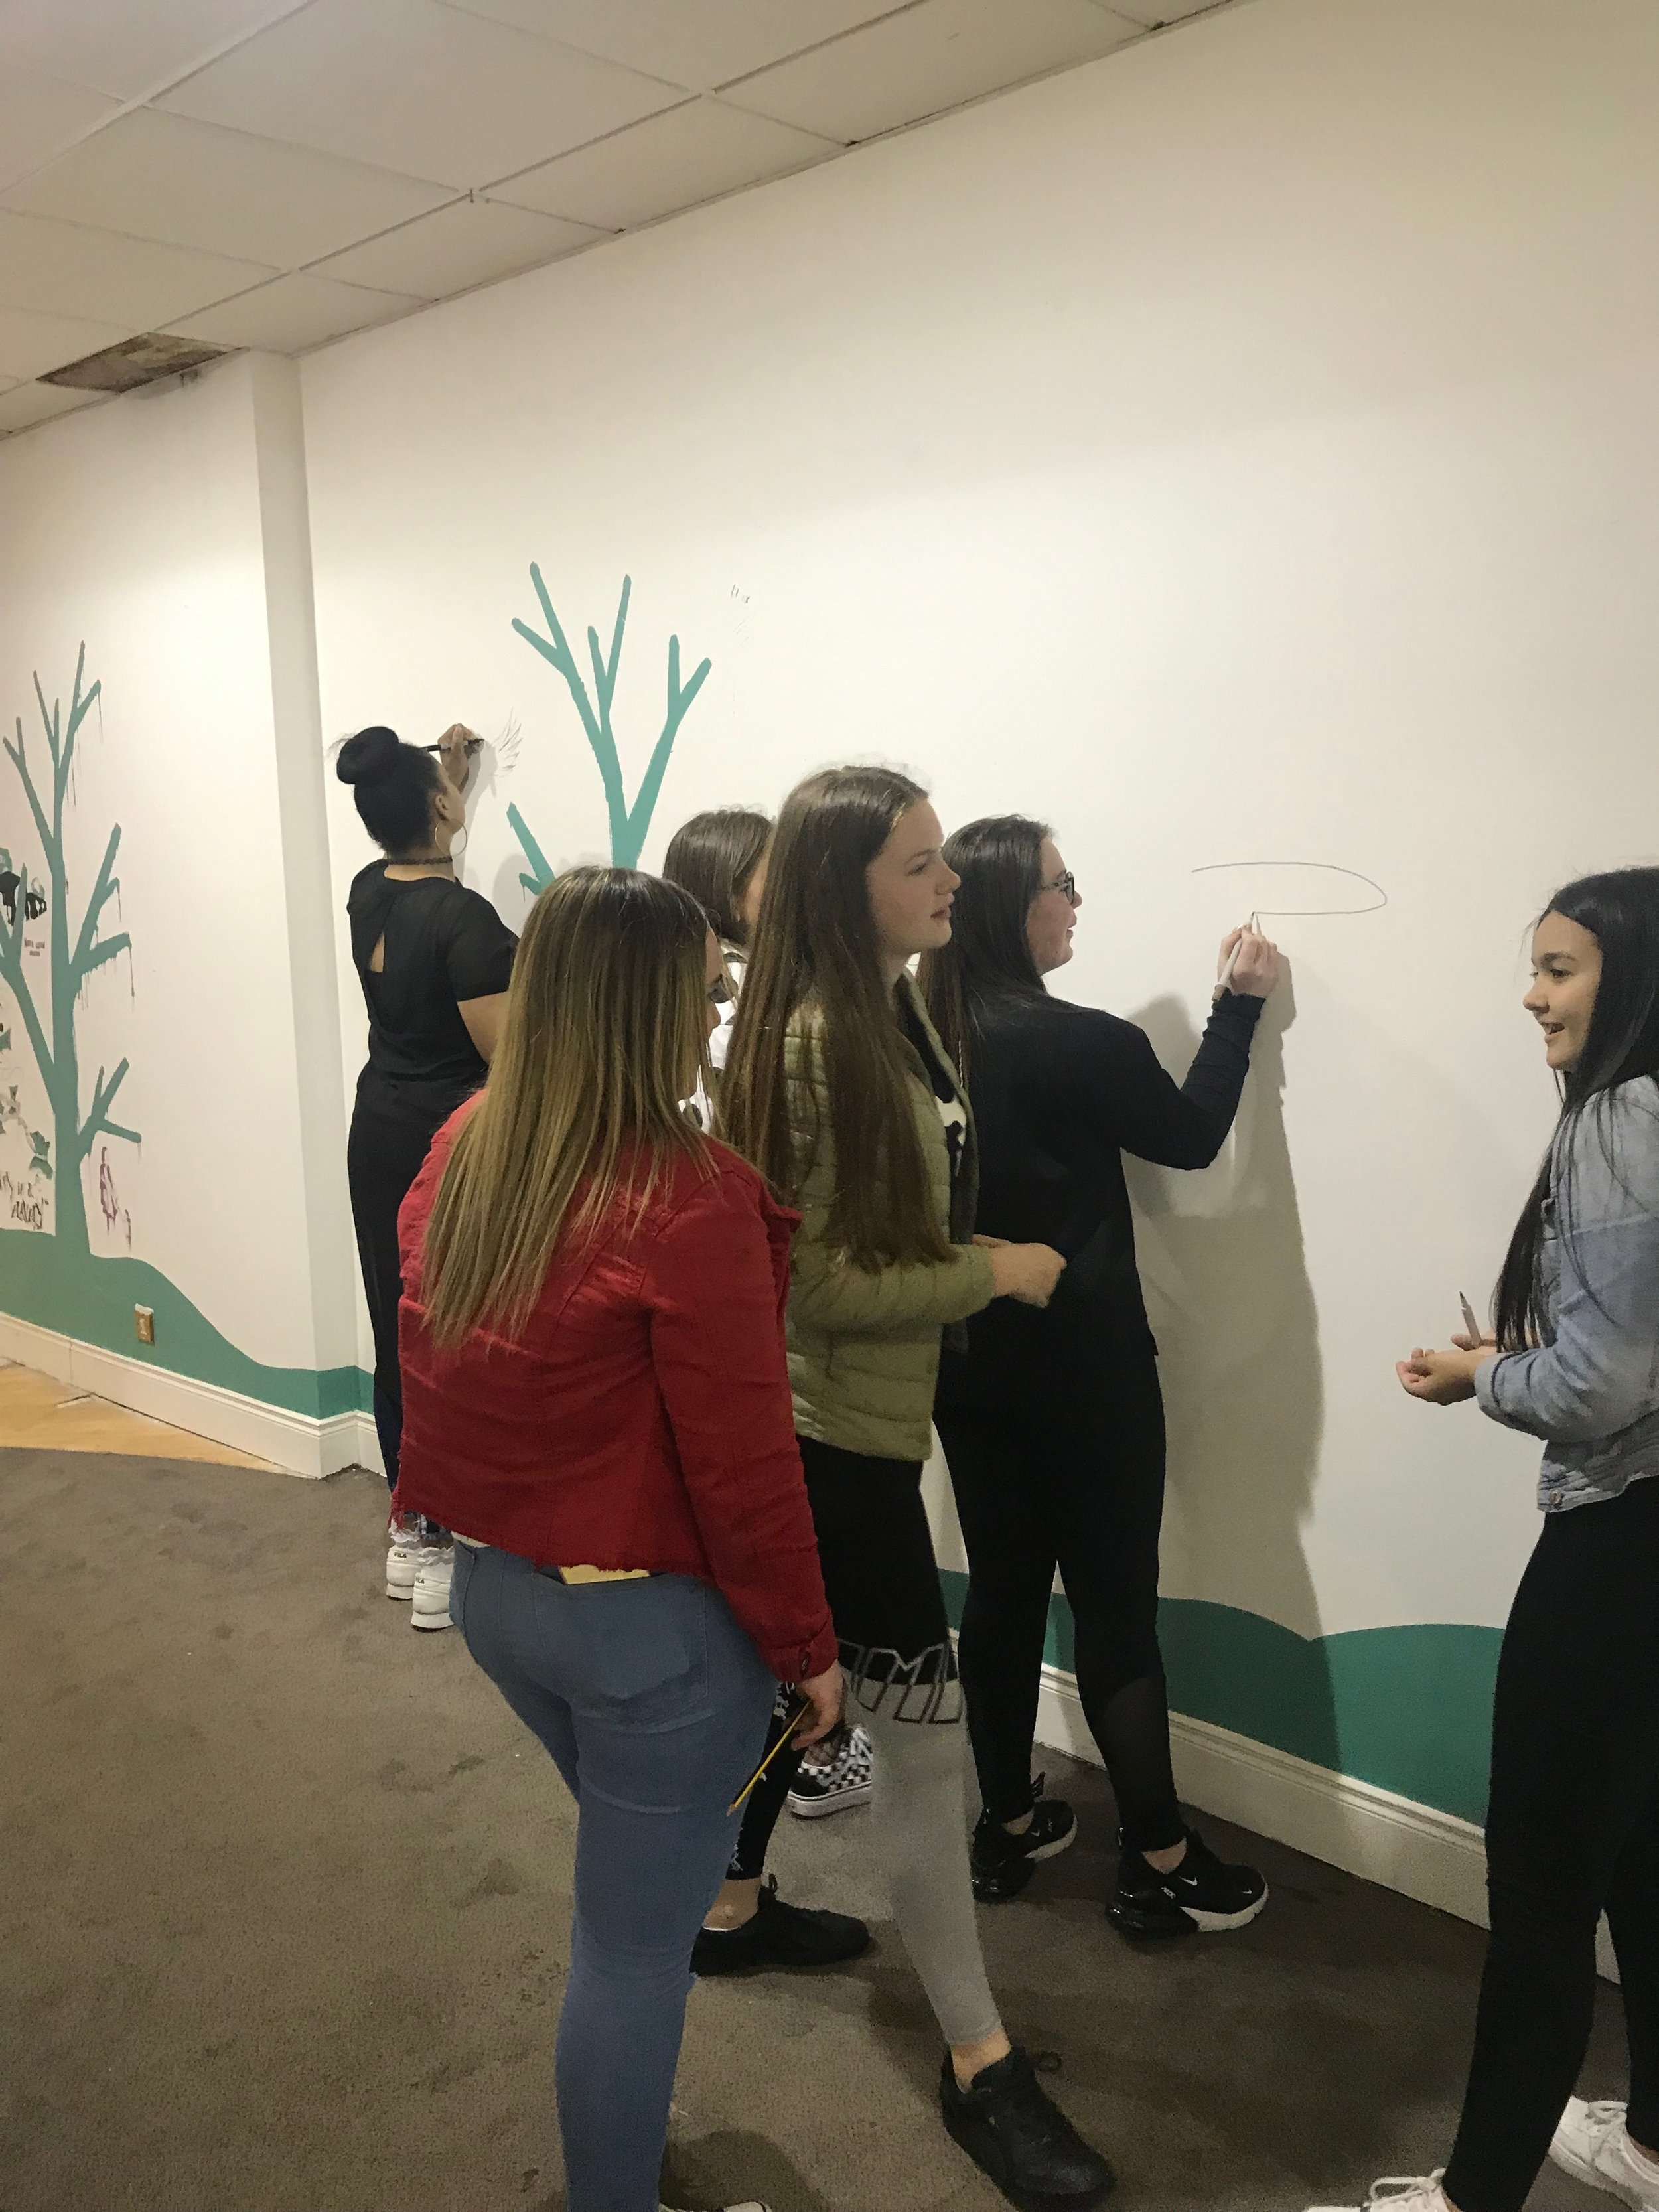 Illustrating on the wall